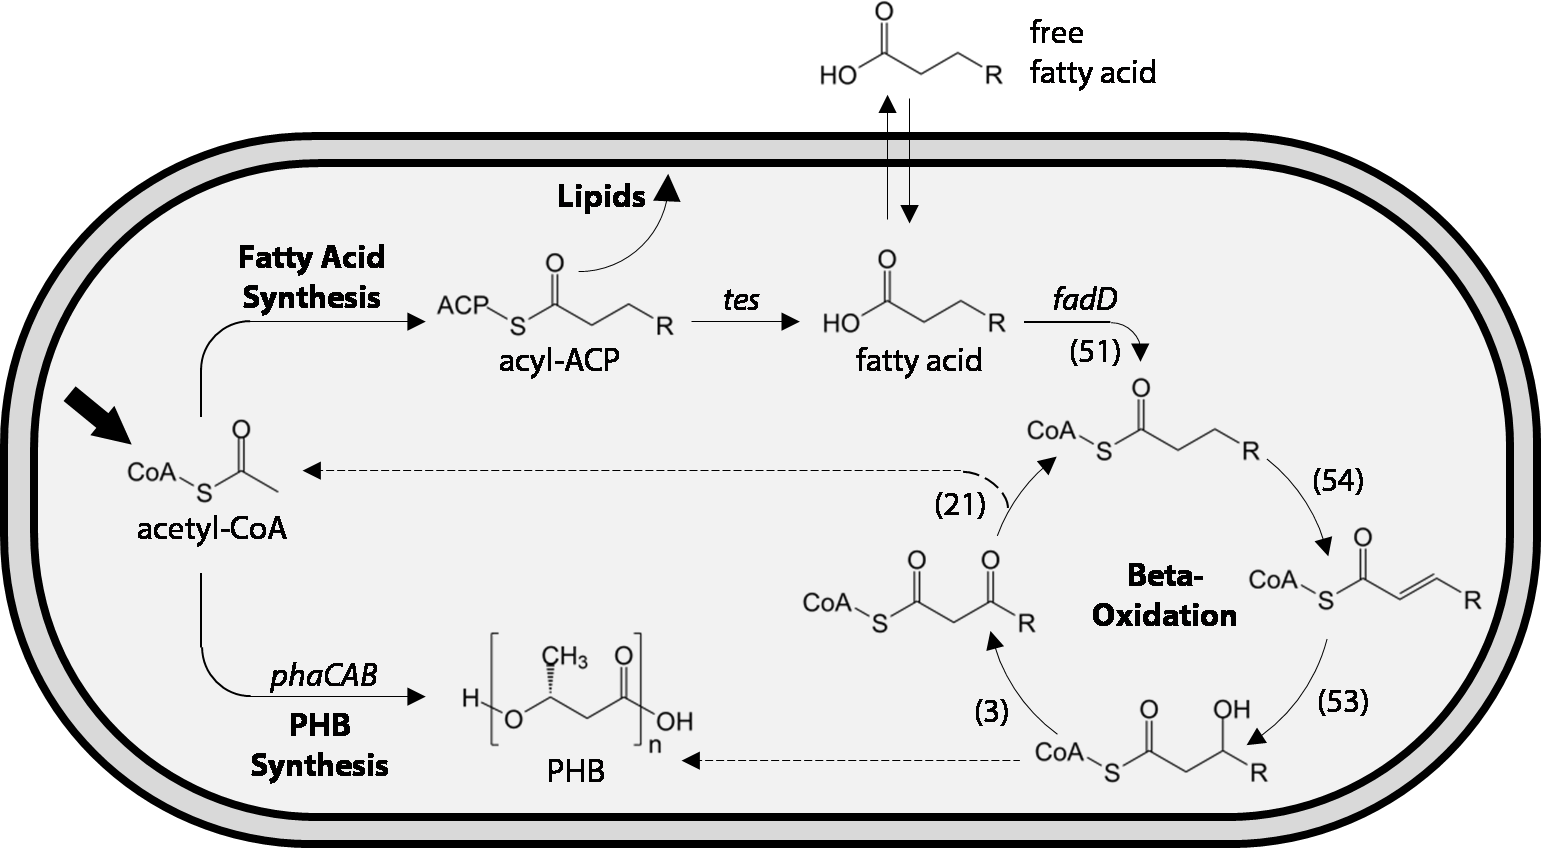 Production Of Fatty Acids In Ralstonia Eutropha H16 By Engineering Ford Y Block Oiling Diagram Download Full Size Image